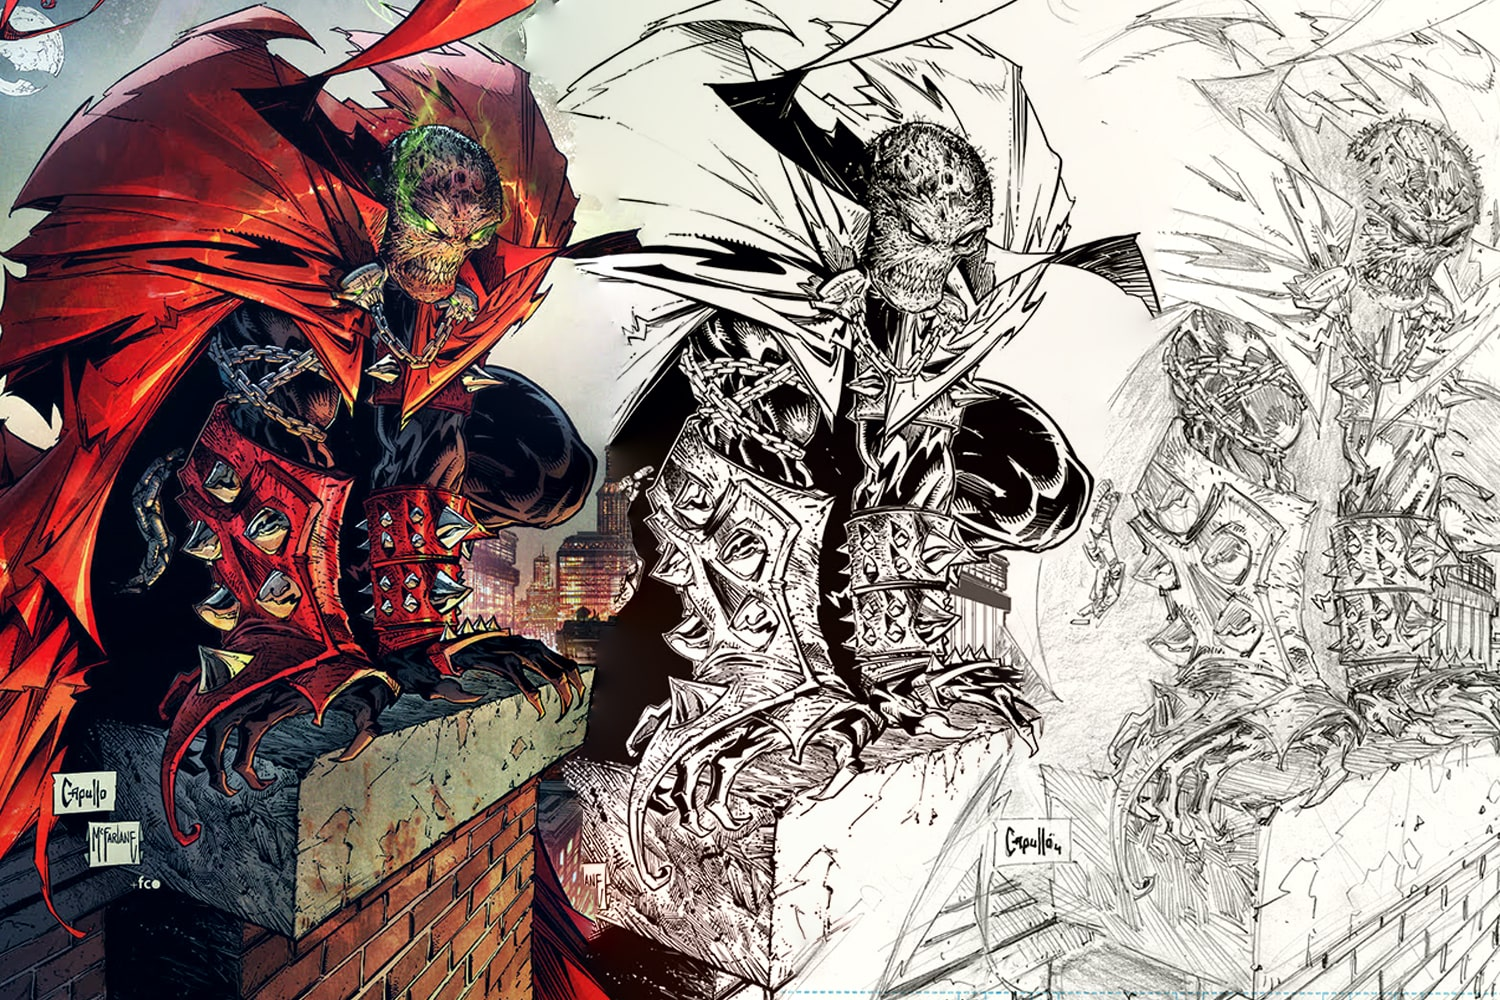 'Spawn' #315 acquires Björn Barends, Stephen Segovia, and 3 covers by Greg Capullo